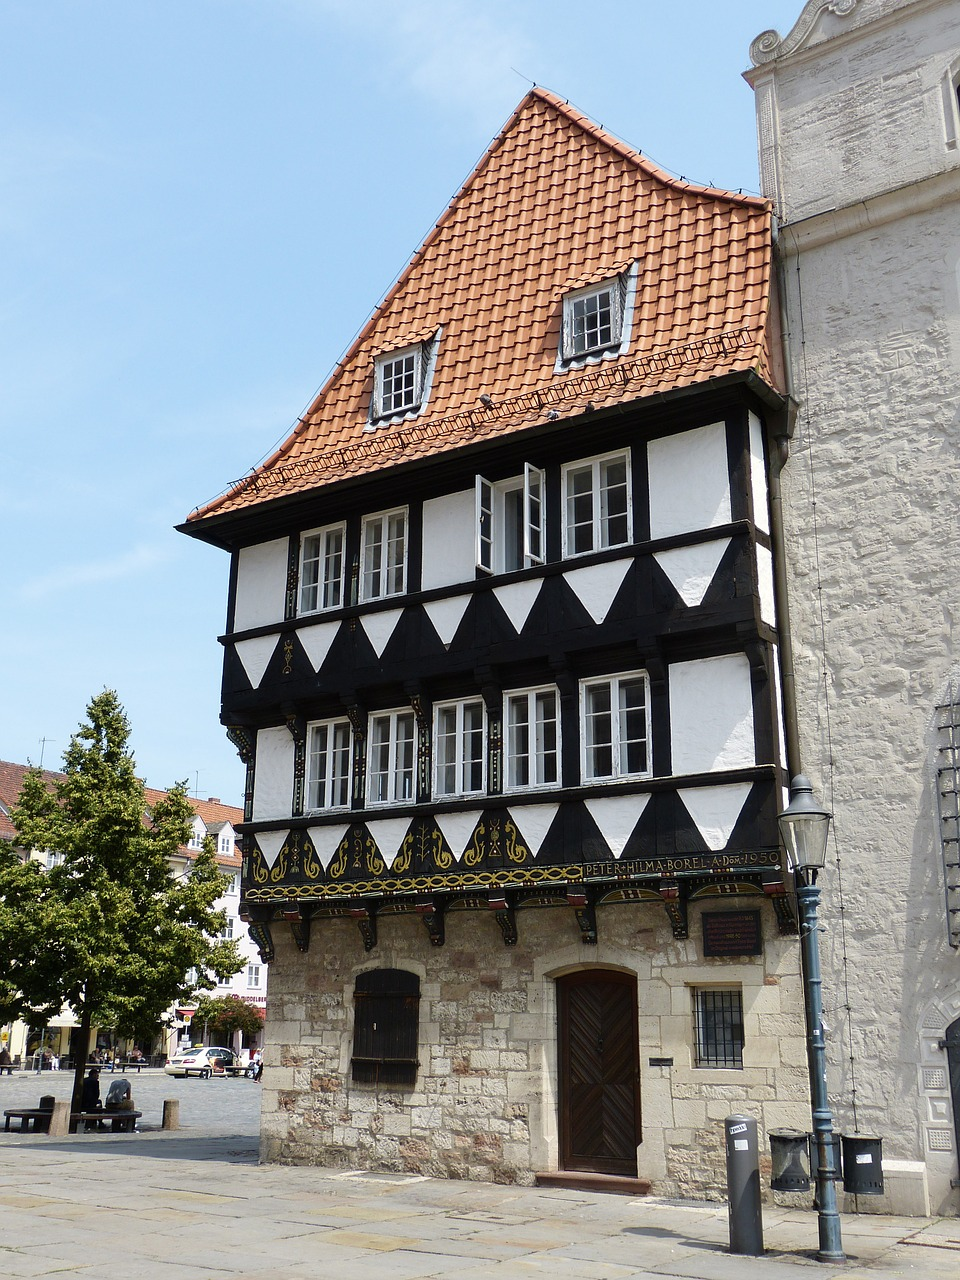 timber framed building braunschweig historically free photo